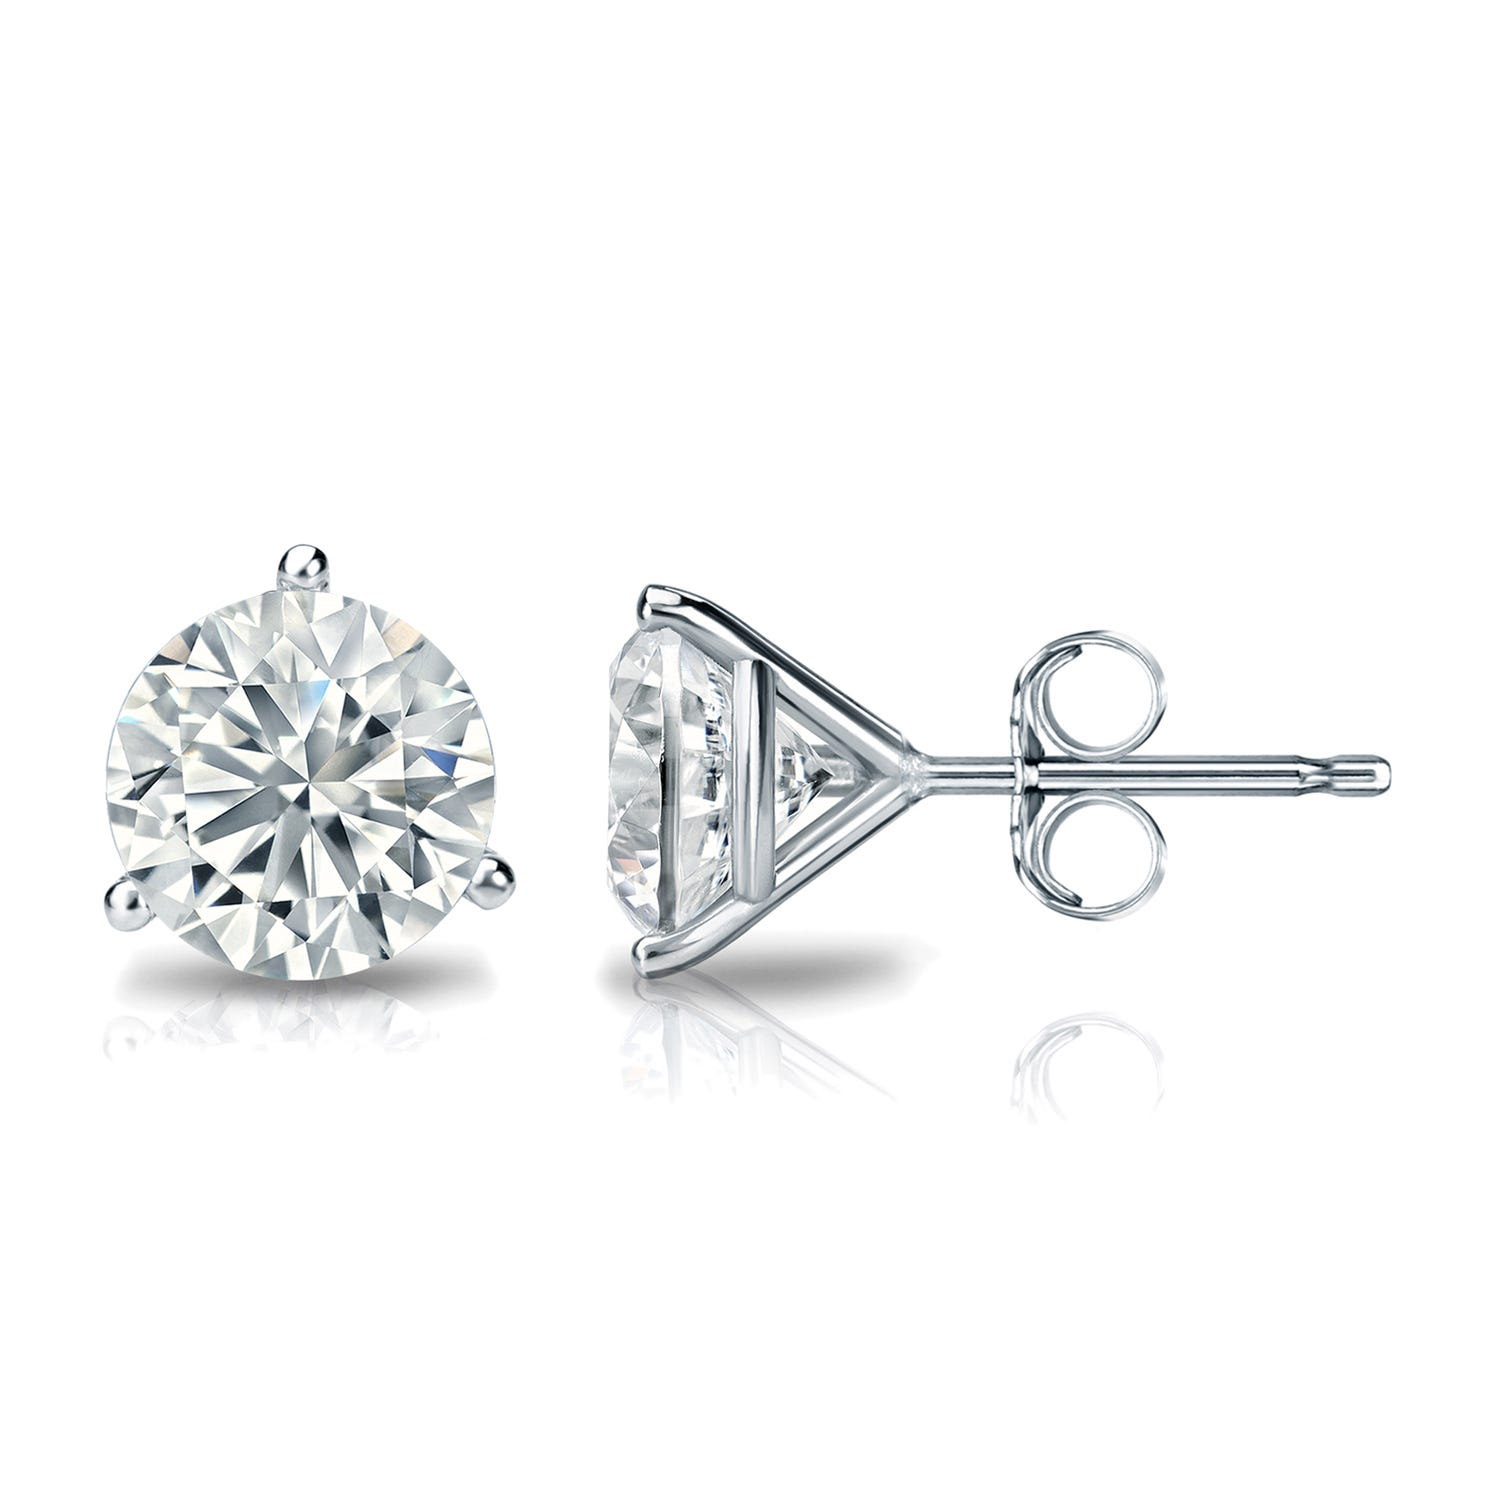 1-1/2 CTTW Round Diamond Solitaire Stud Earrings IJ SI1 in 18K White Gold IGI Certified 3-Prong Setting